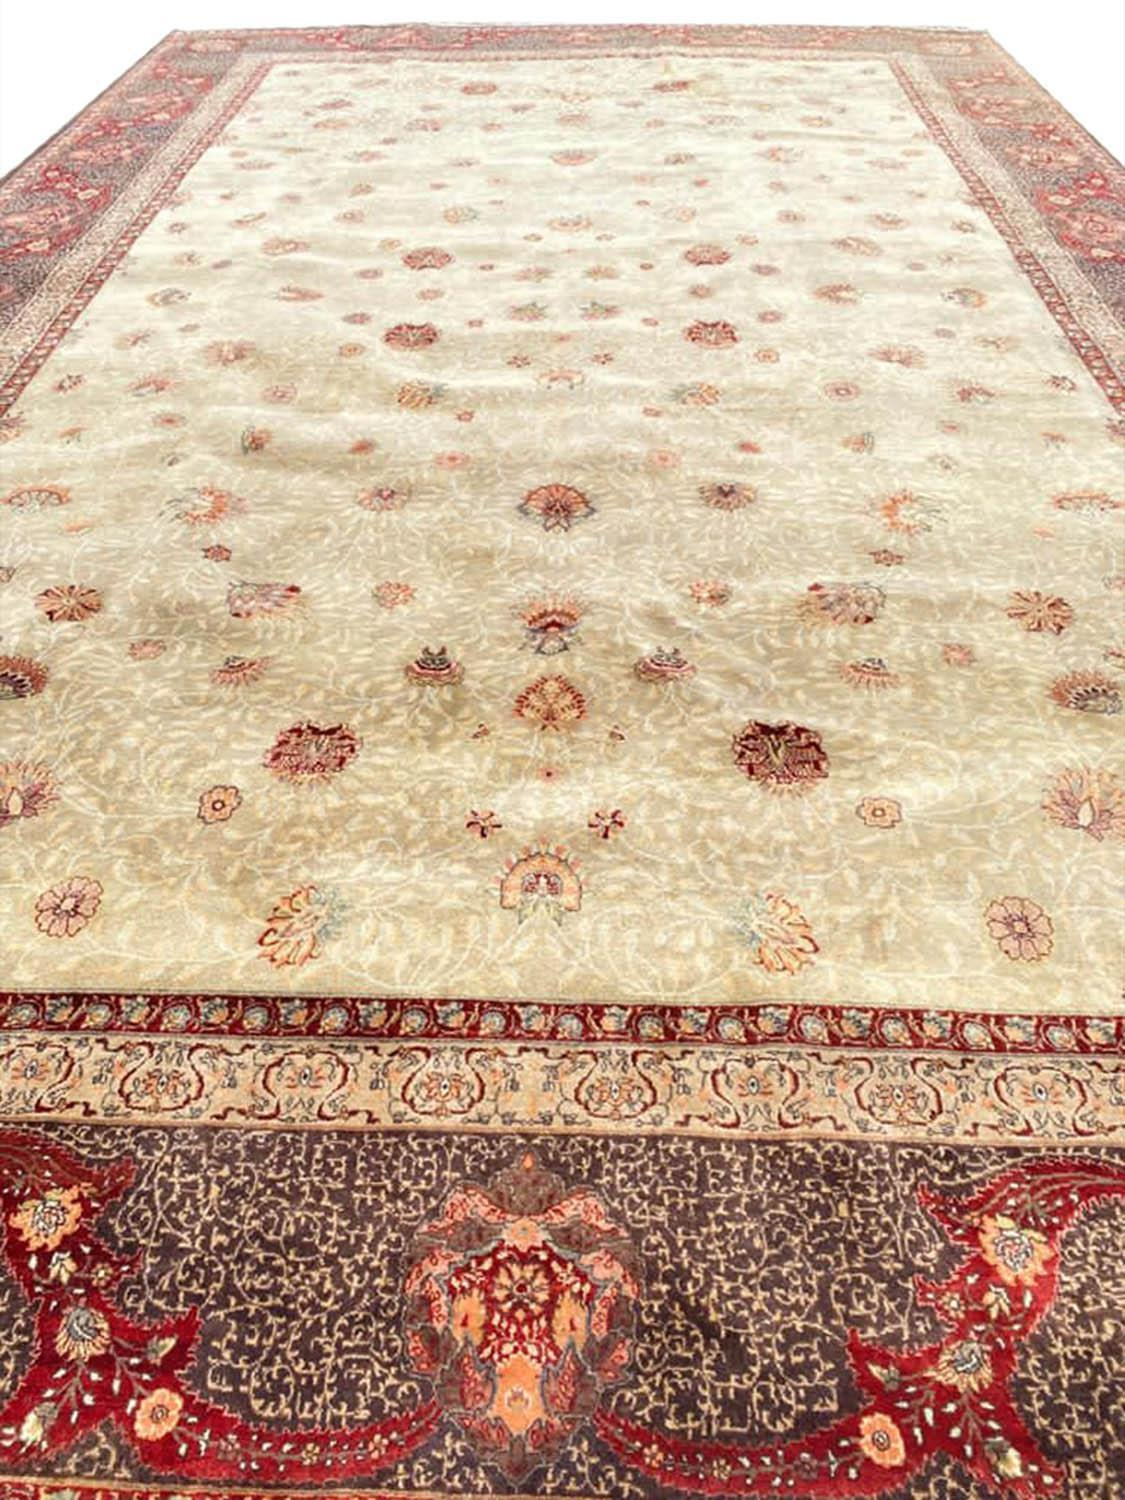 FINE HEREKE DESIGN CARPET, 560cm x 353cm.